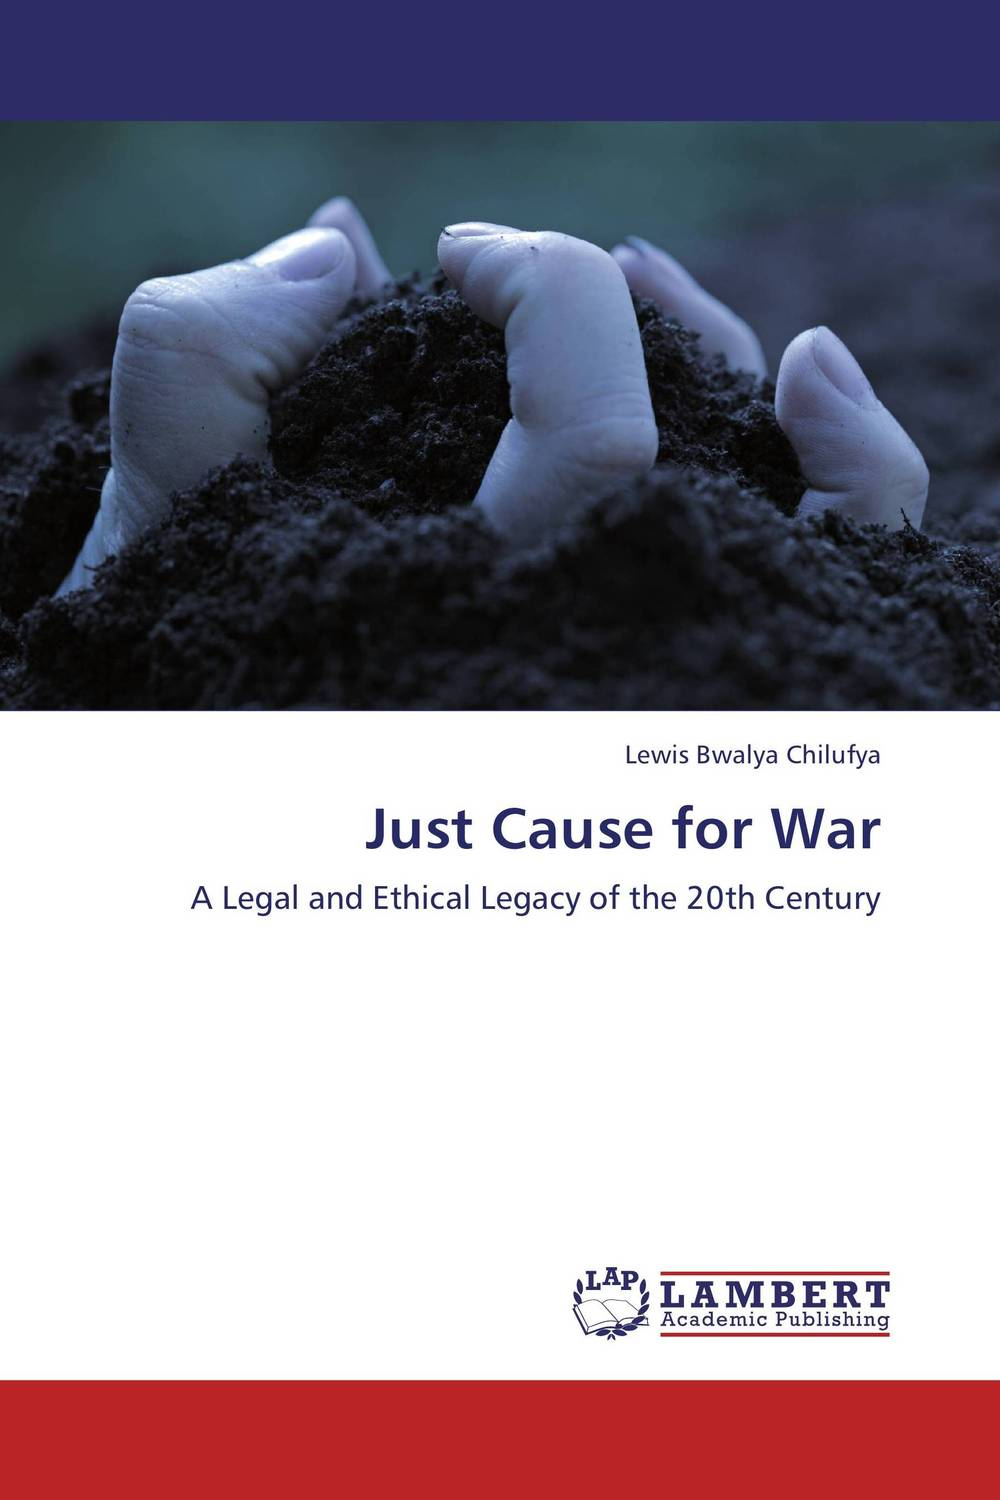 Just Cause for War